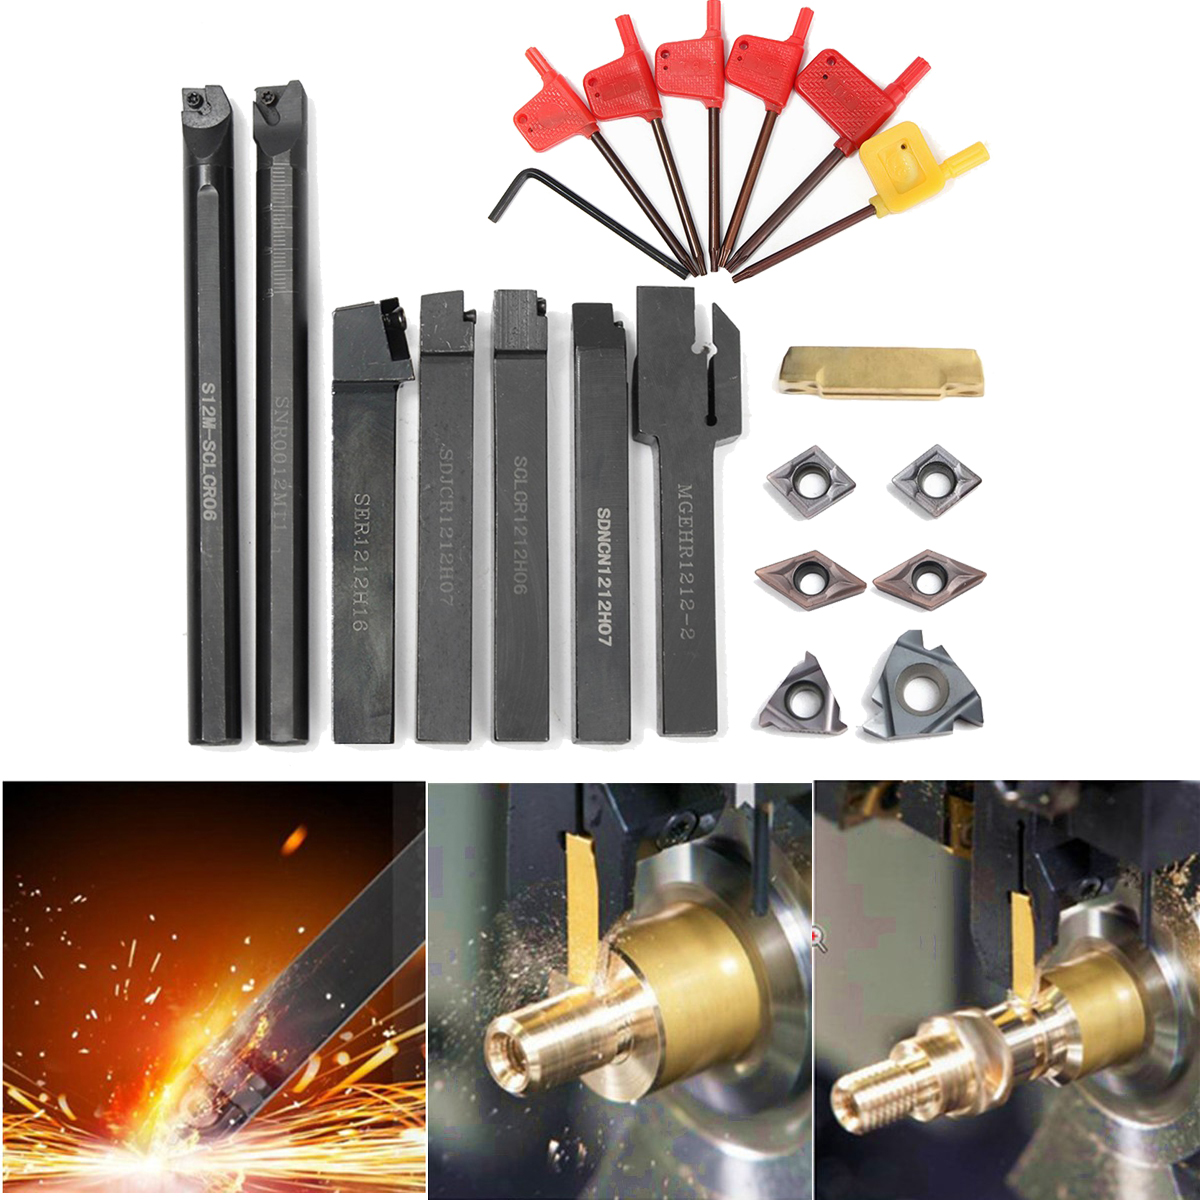 12MM Lathe Turning Tool Holder Boring Bar+ 7 pcs Carbide Inserts + Wrench For Lathe Turning Tool